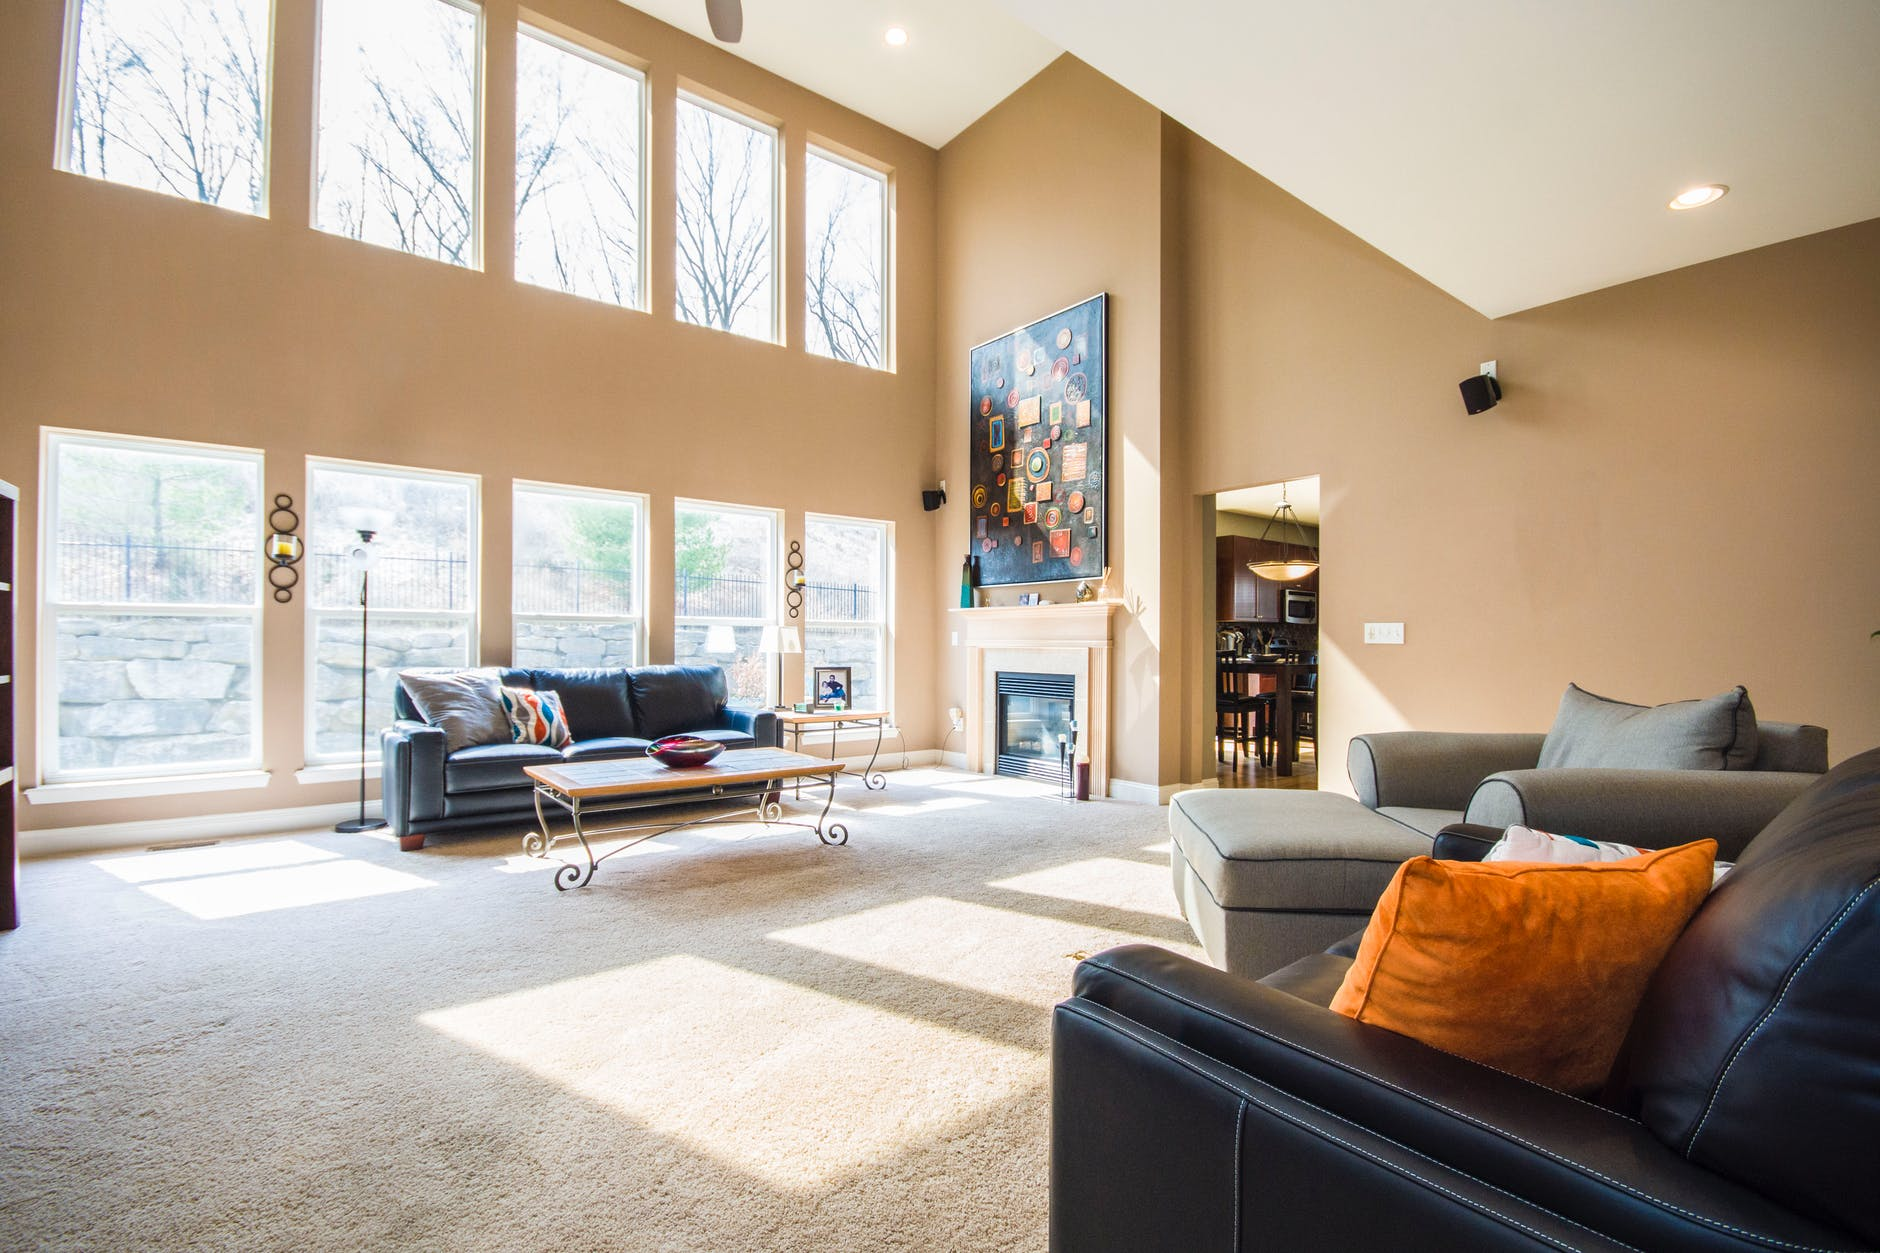 Bright, spacious living room with lots of windows